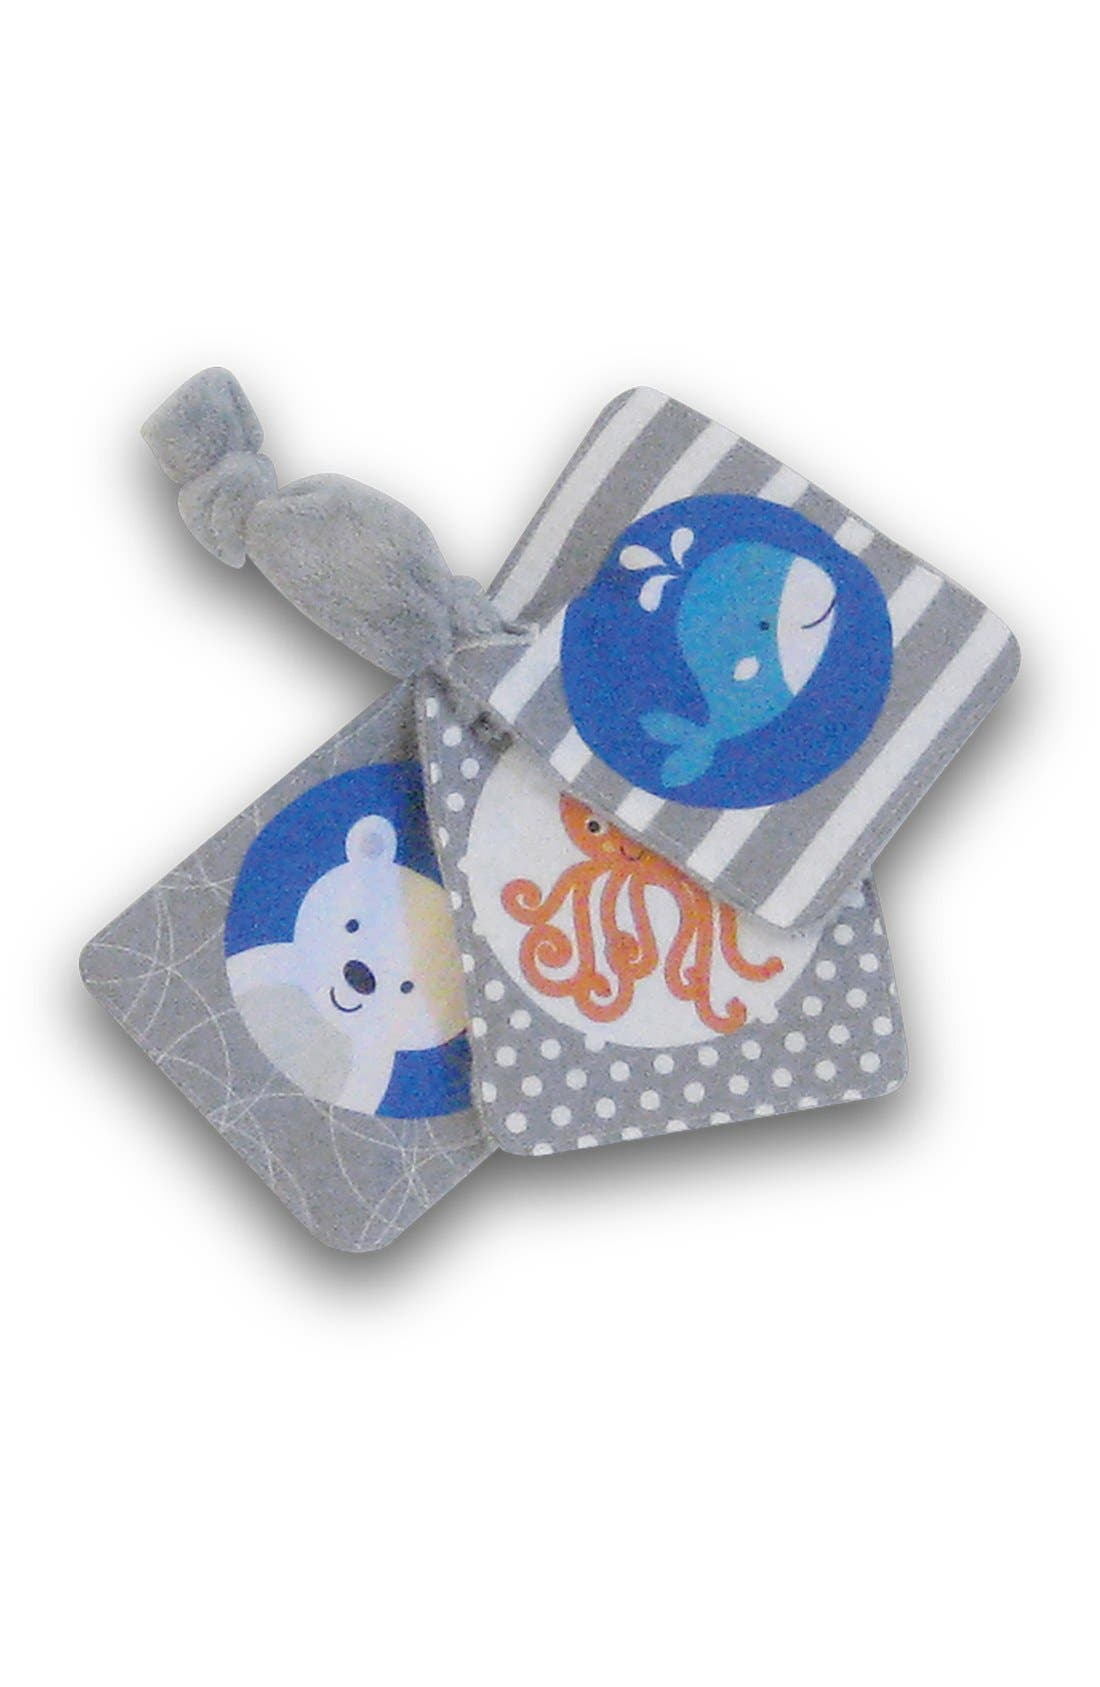 Tummy Time - SlideLine Collection Mini Pillow, Book & Teething Ring,                             Alternate thumbnail 2, color,                             GREY